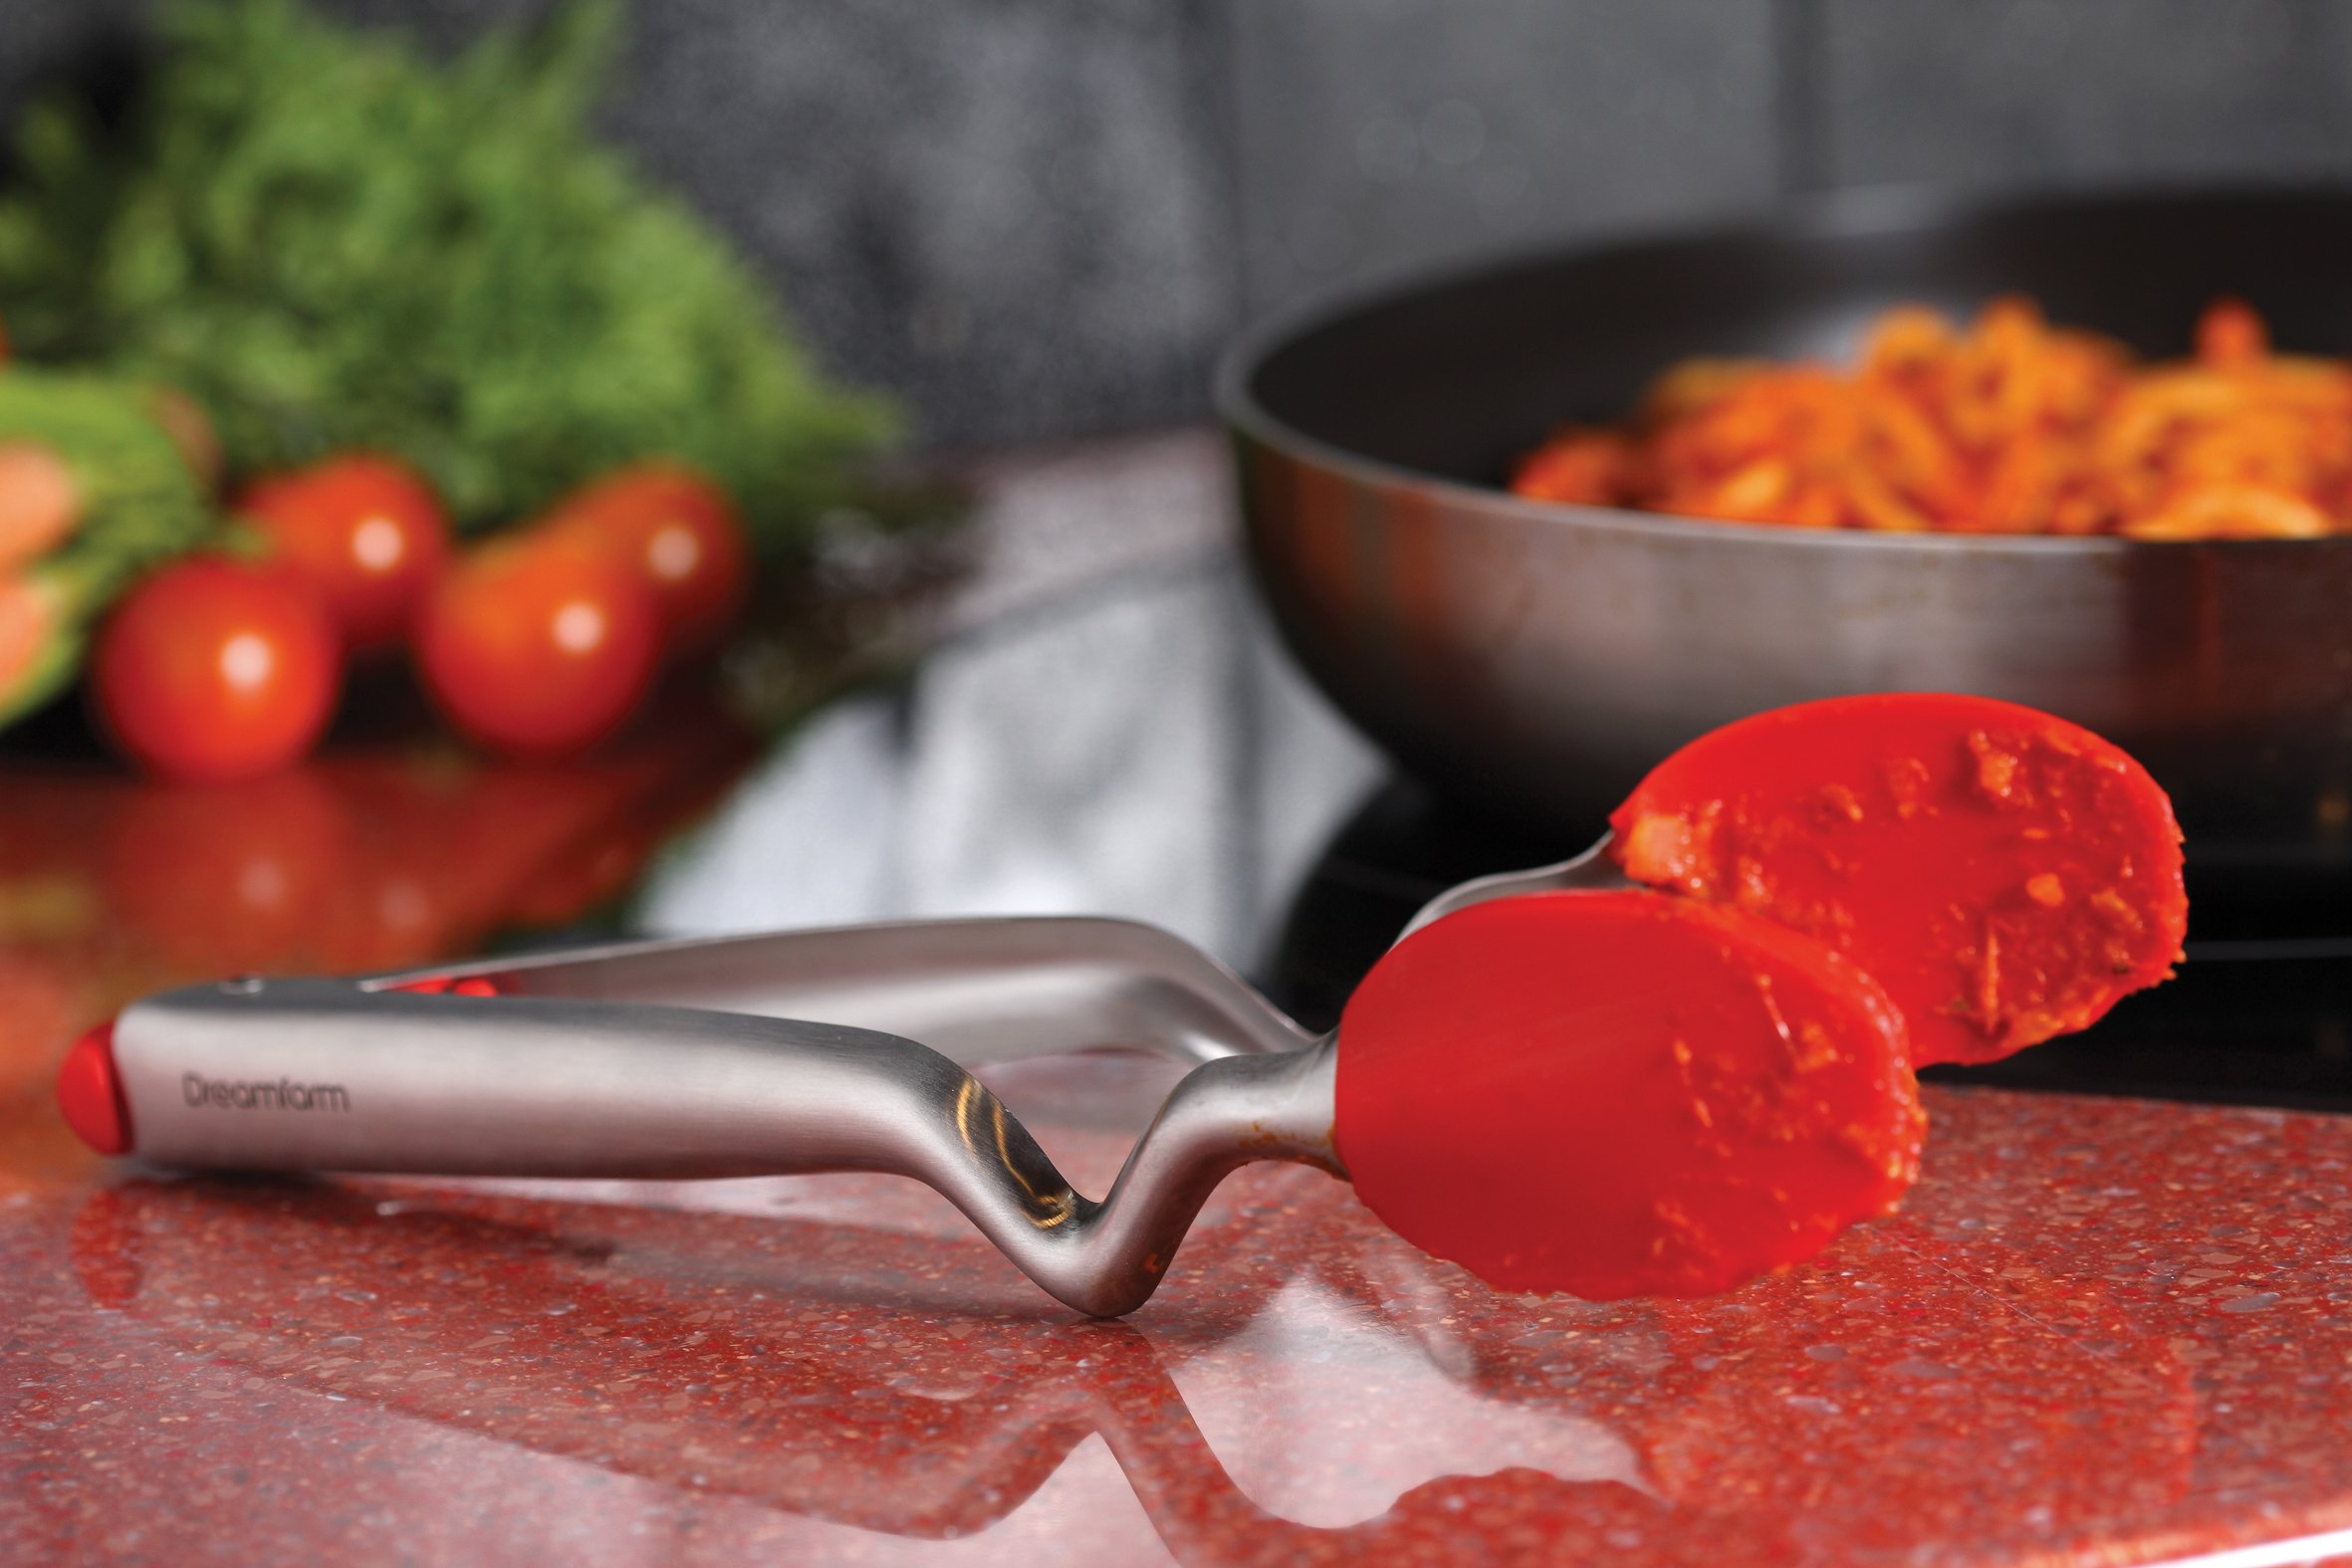 Dreamfarm Clongs 9-Inch - Click-Lock Sit Up Tongs with Silicone Heads (Red) by Dreamfarm (Image #10)